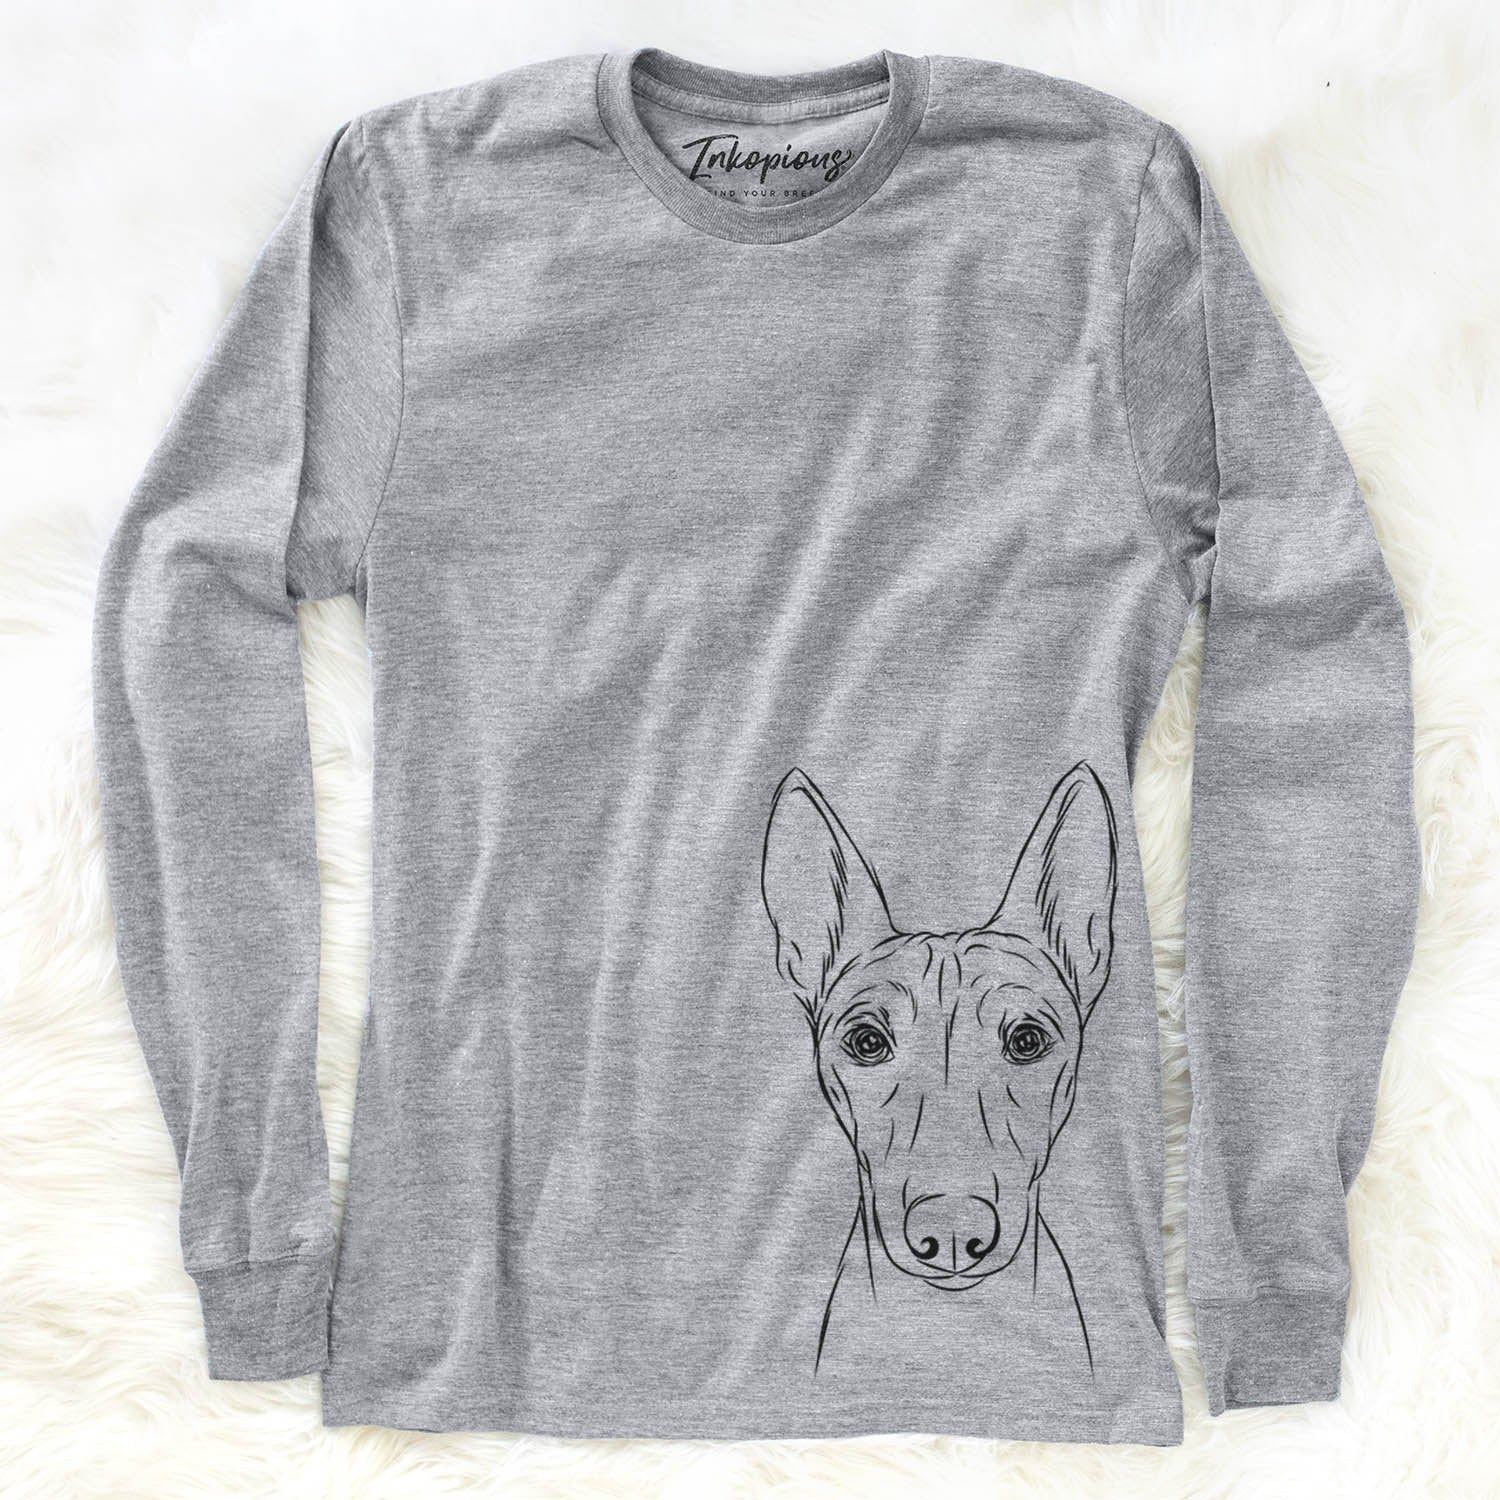 Bonsai the Basenji - Long Sleeve Crewneck